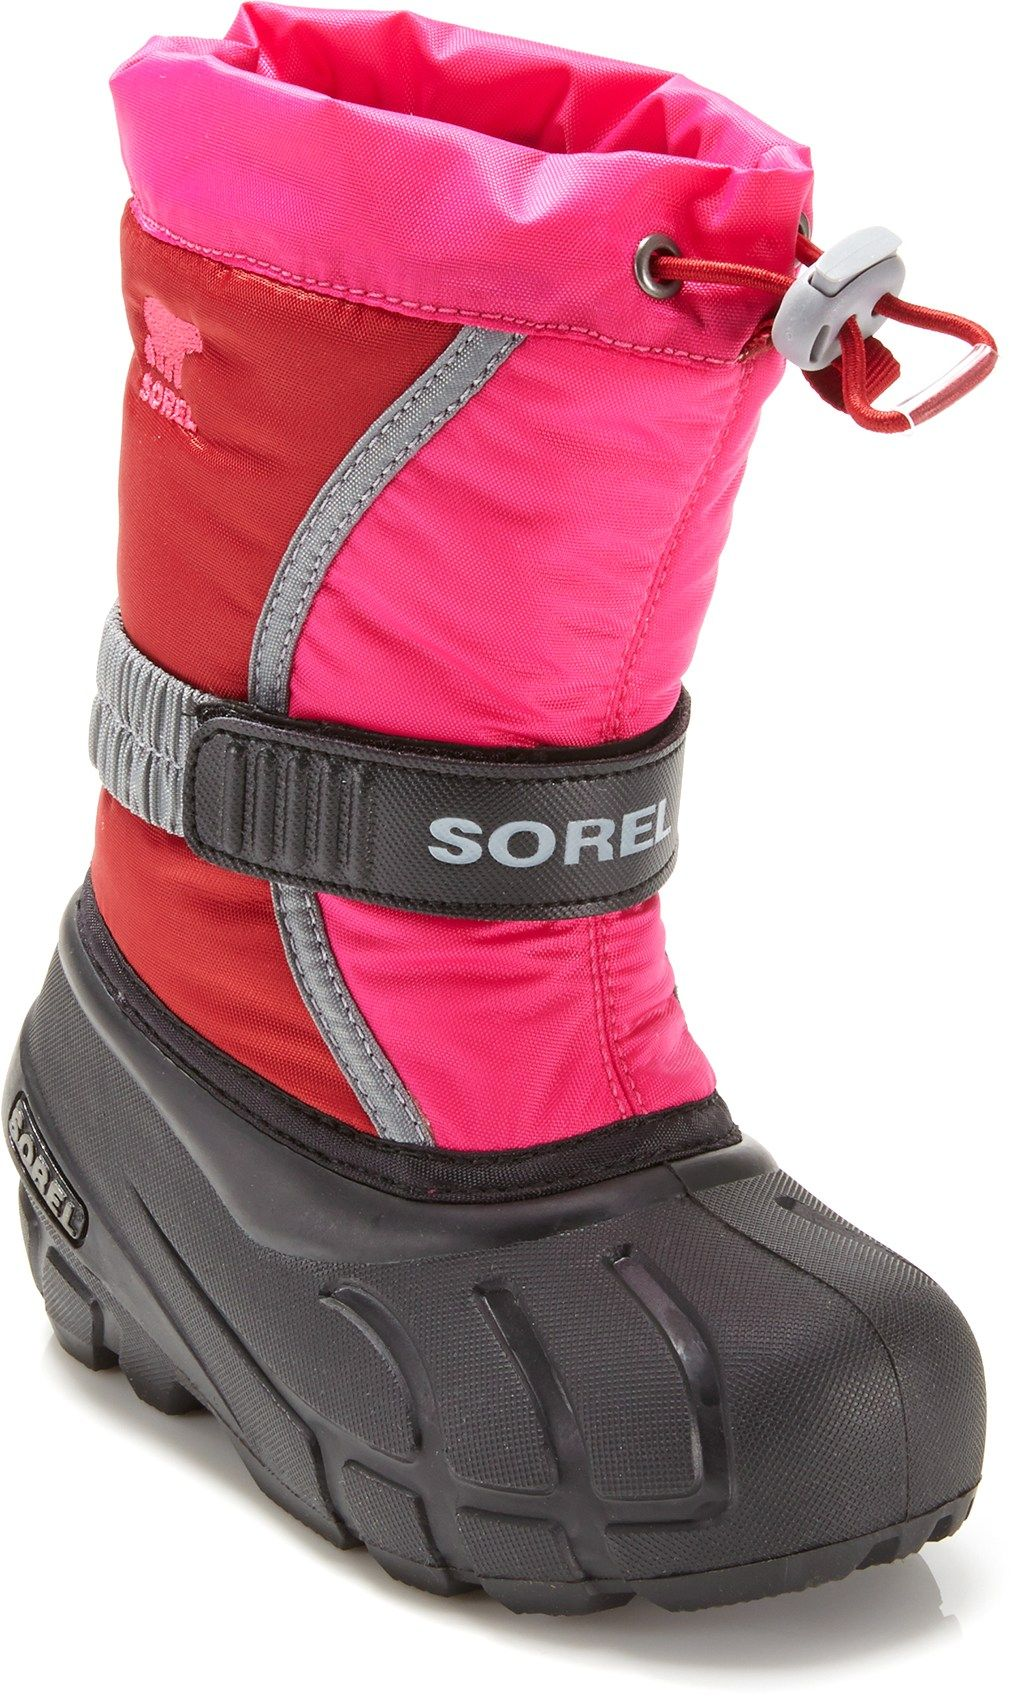 fbf77a32756 Sorel Flurry TP Snow Boots - Kids' | REI Co-op | *Apparel ...